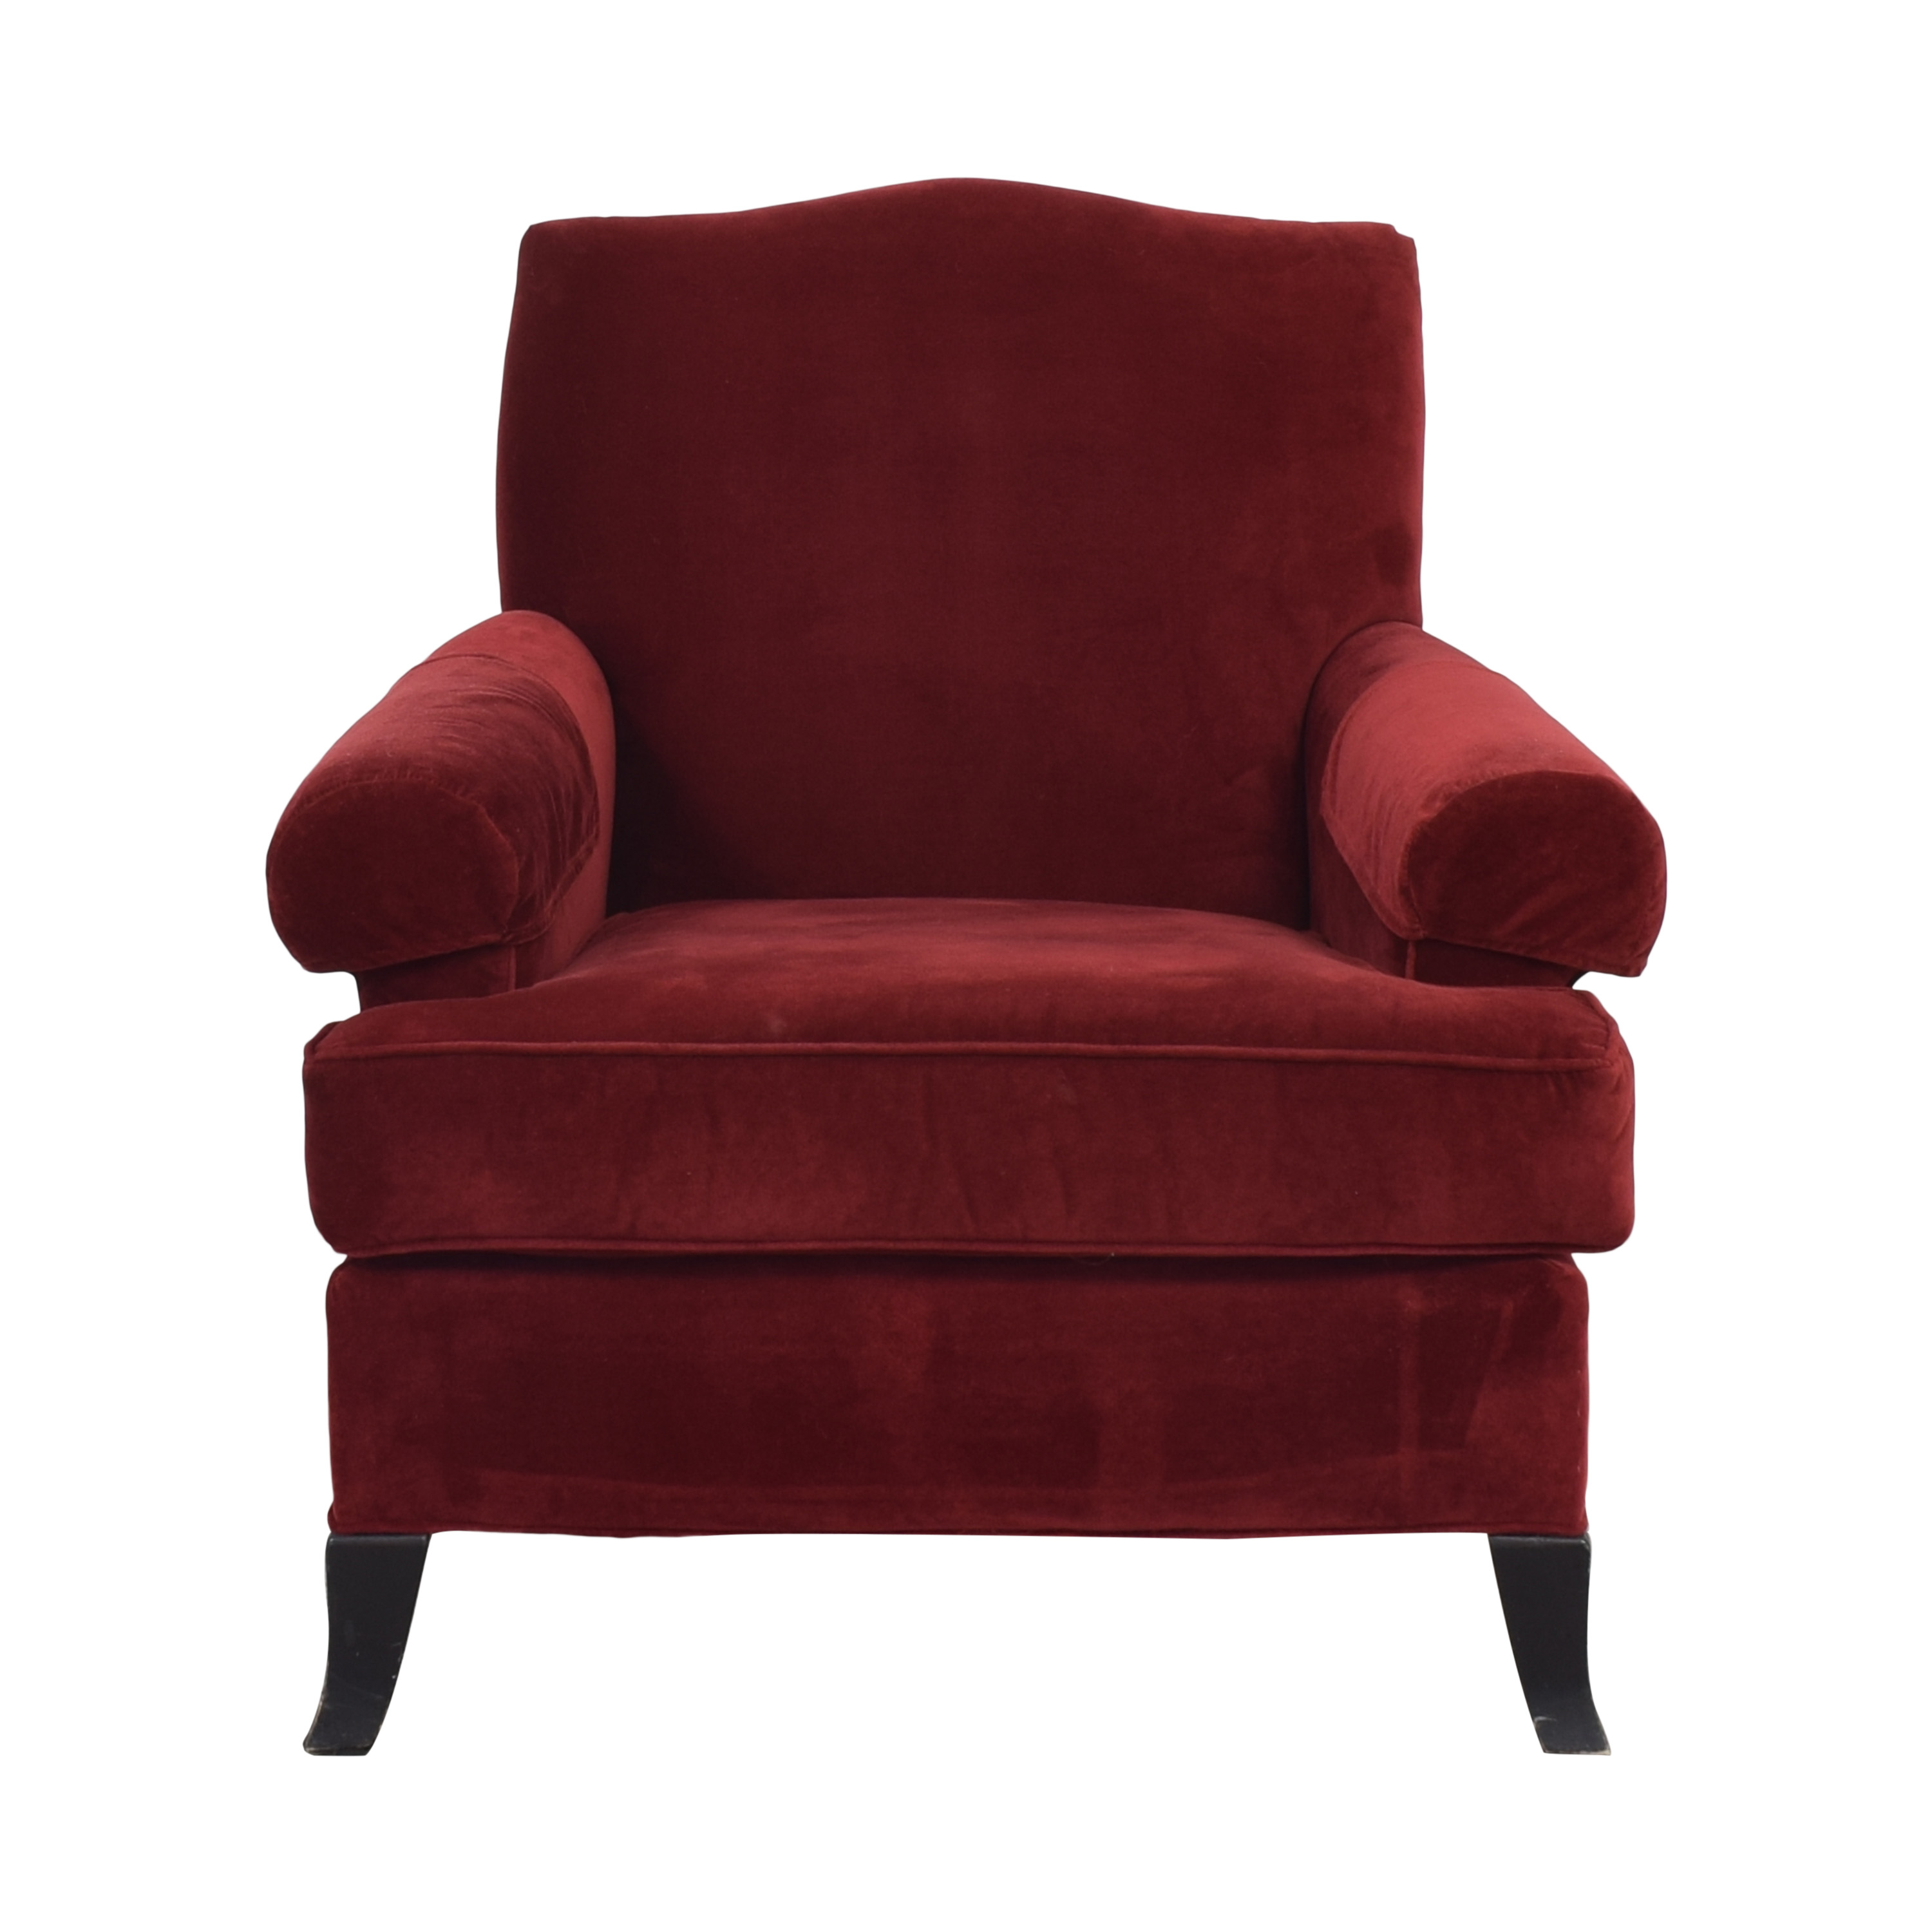 Crate & Barrel Crate & Barrel Arm Chair red